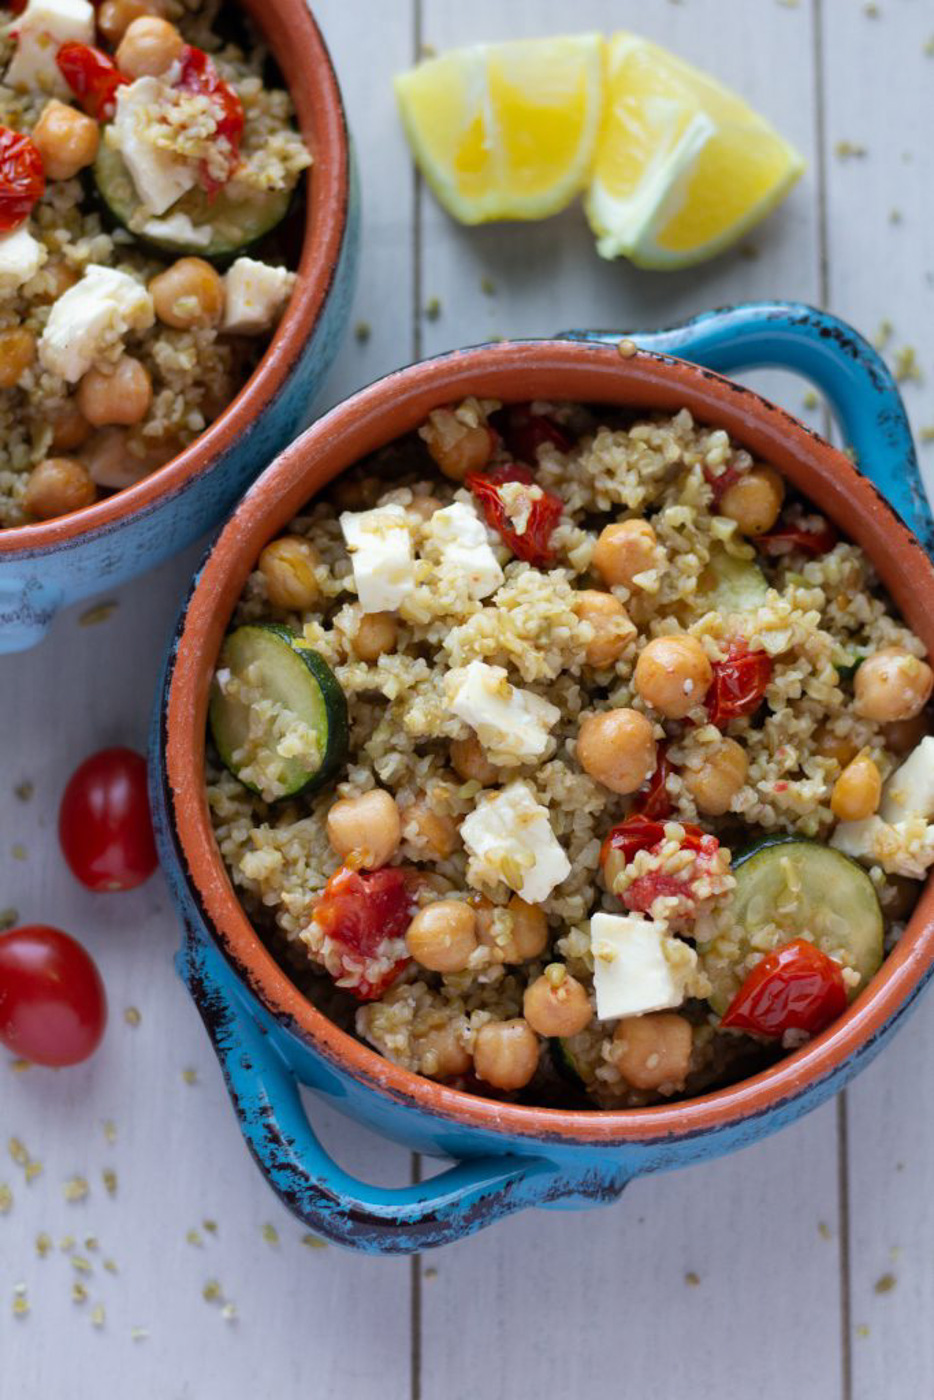 Addicting Mediterranean Grain Bowl with Freekeh and Roasted Chickpeas